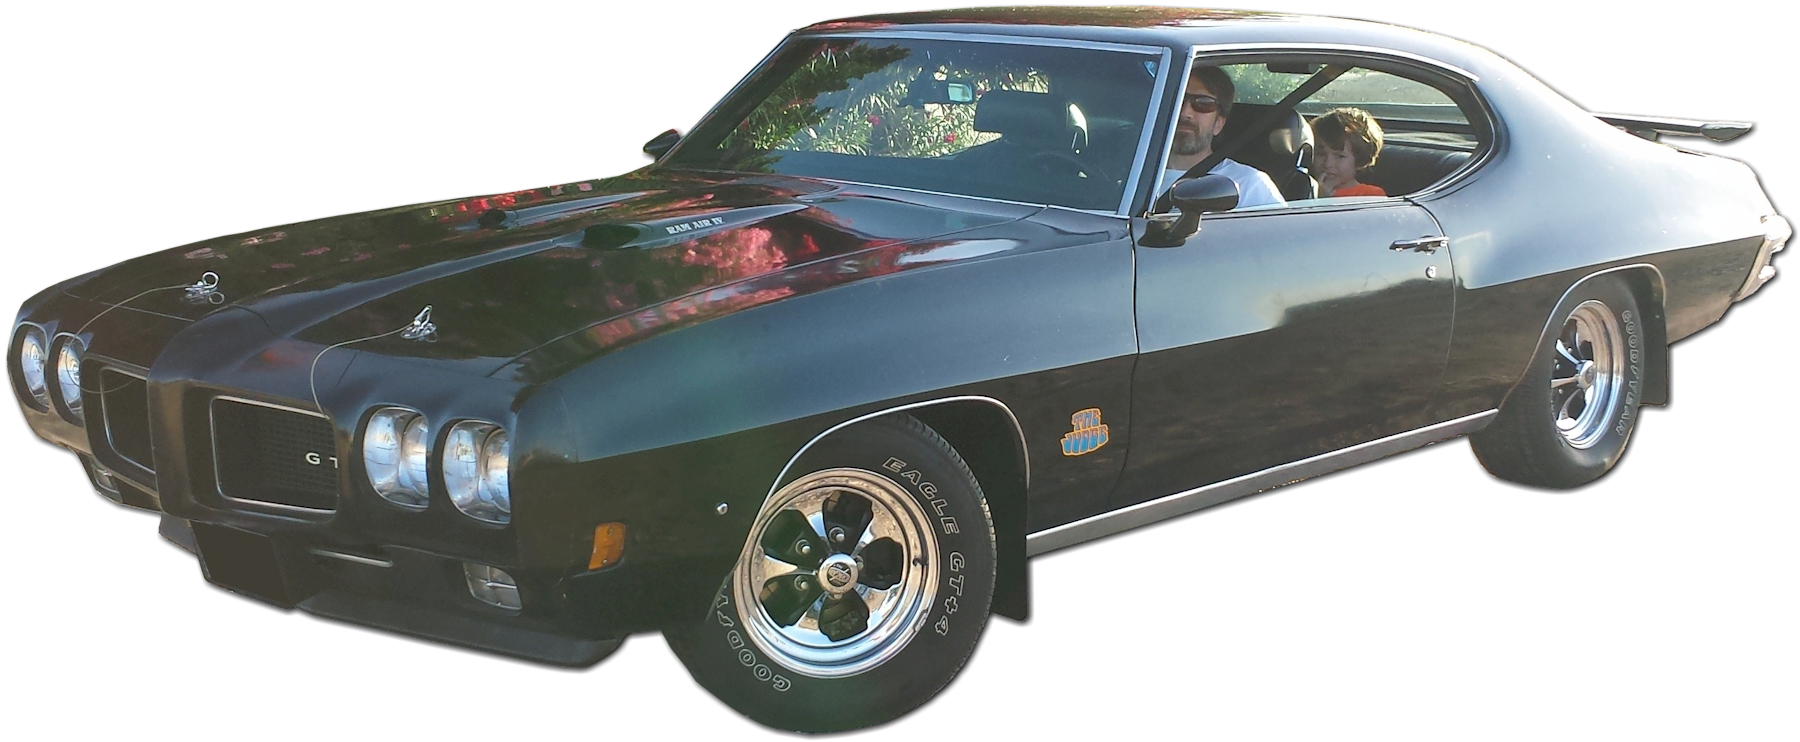 the1970gto.com gets The Judge decals back